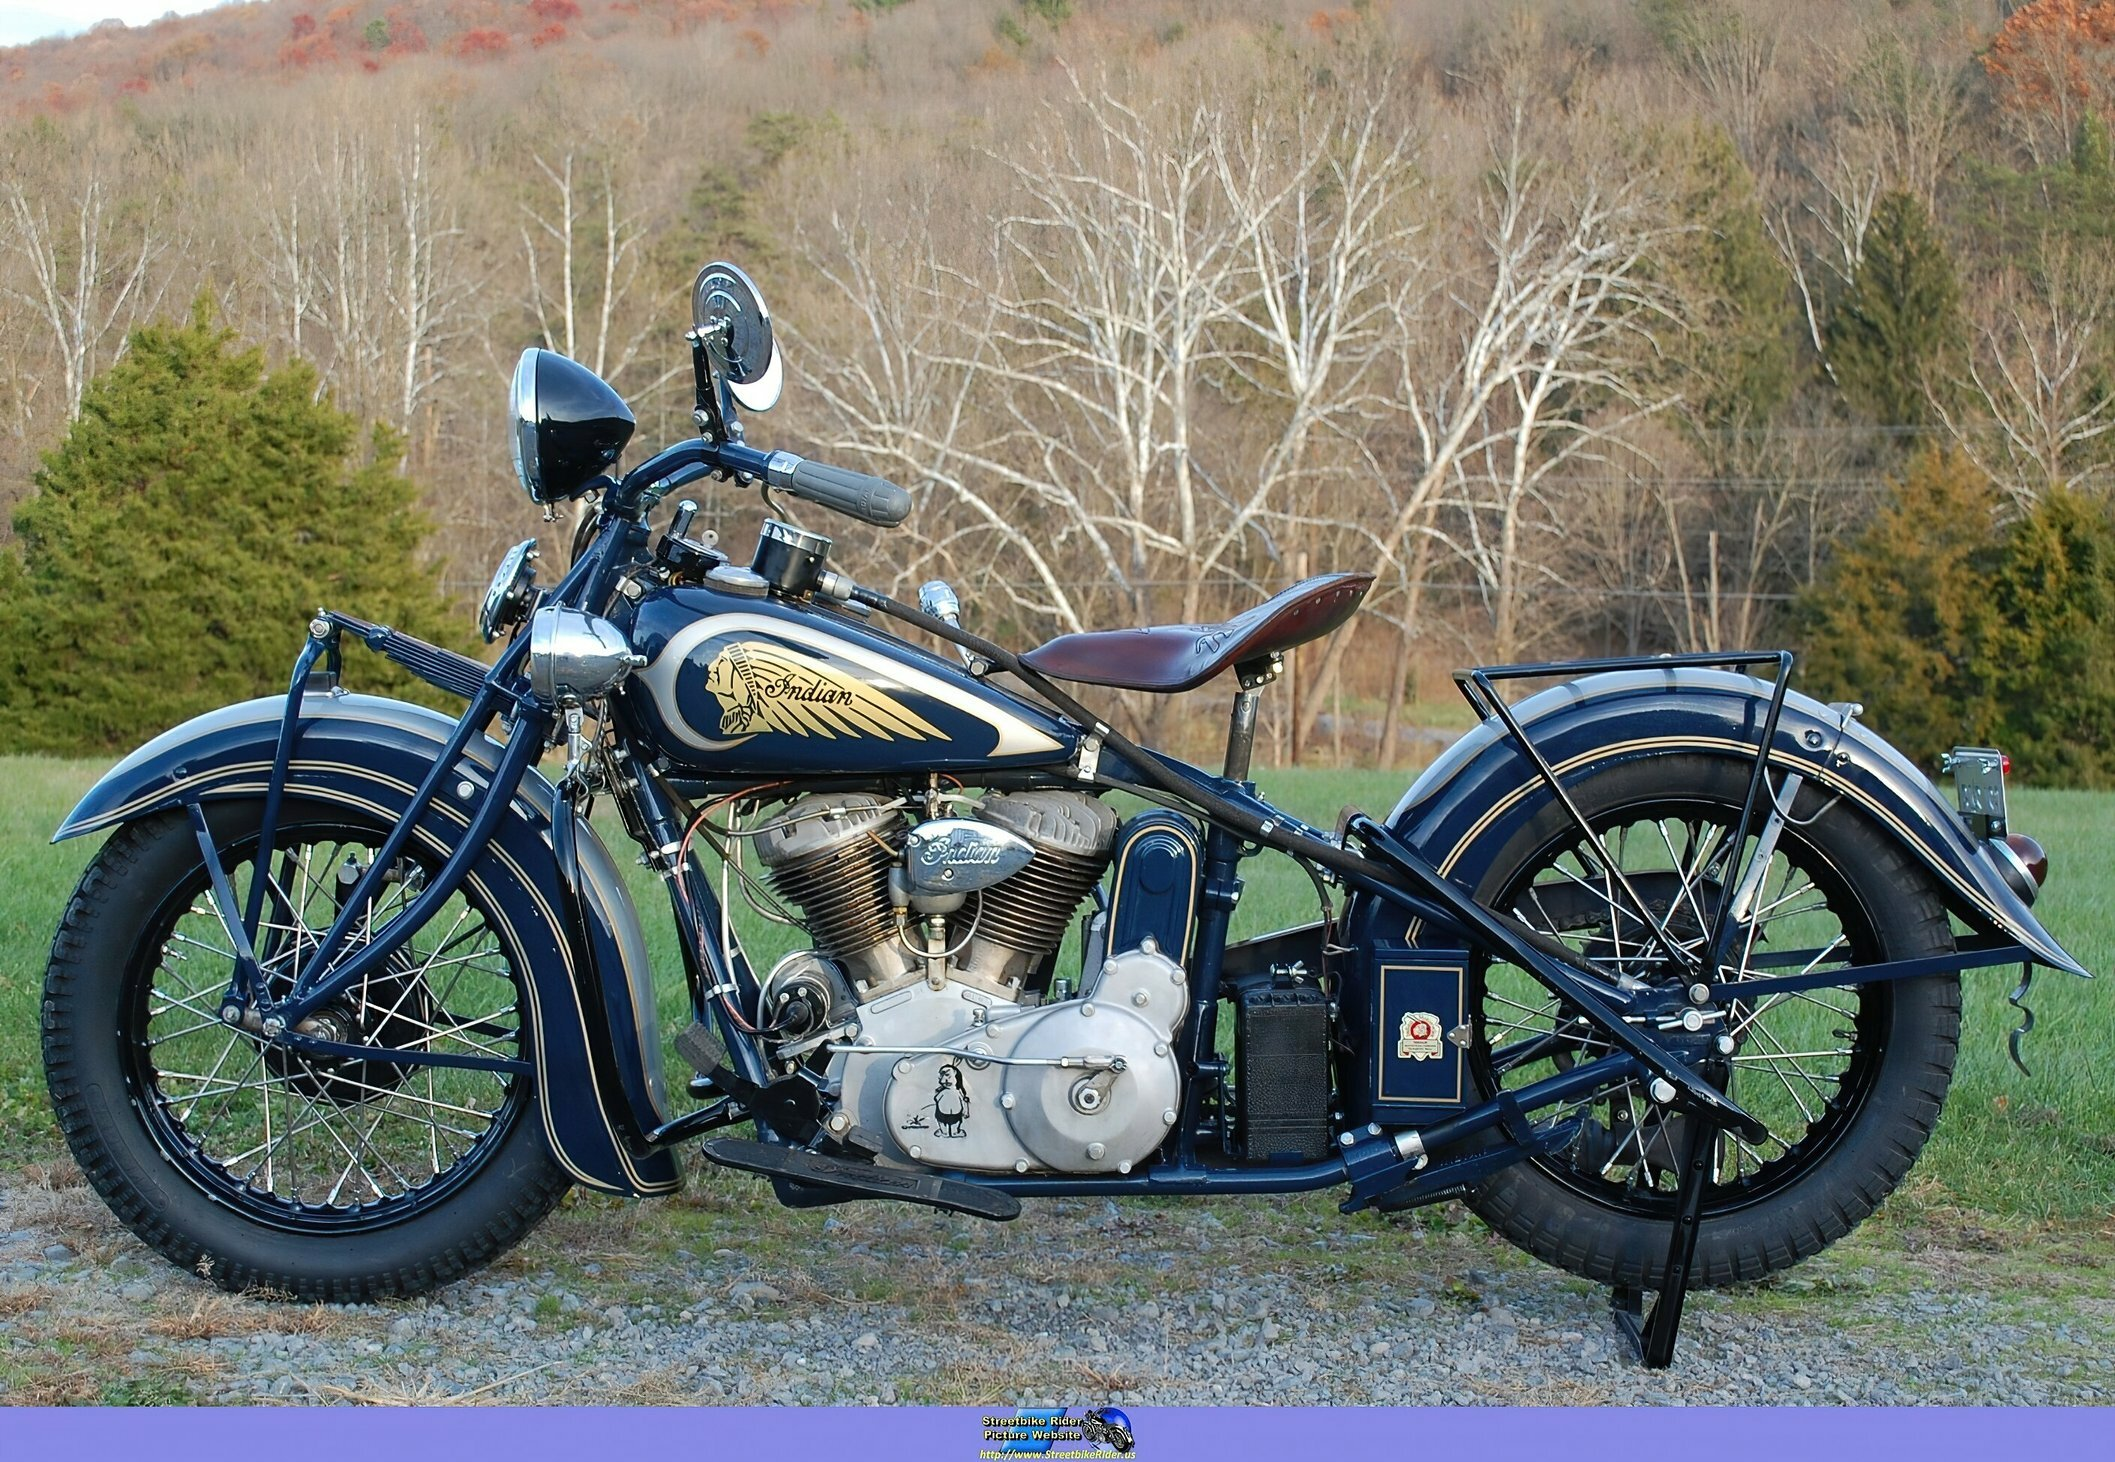 Indian Chief Models - ID: 143229